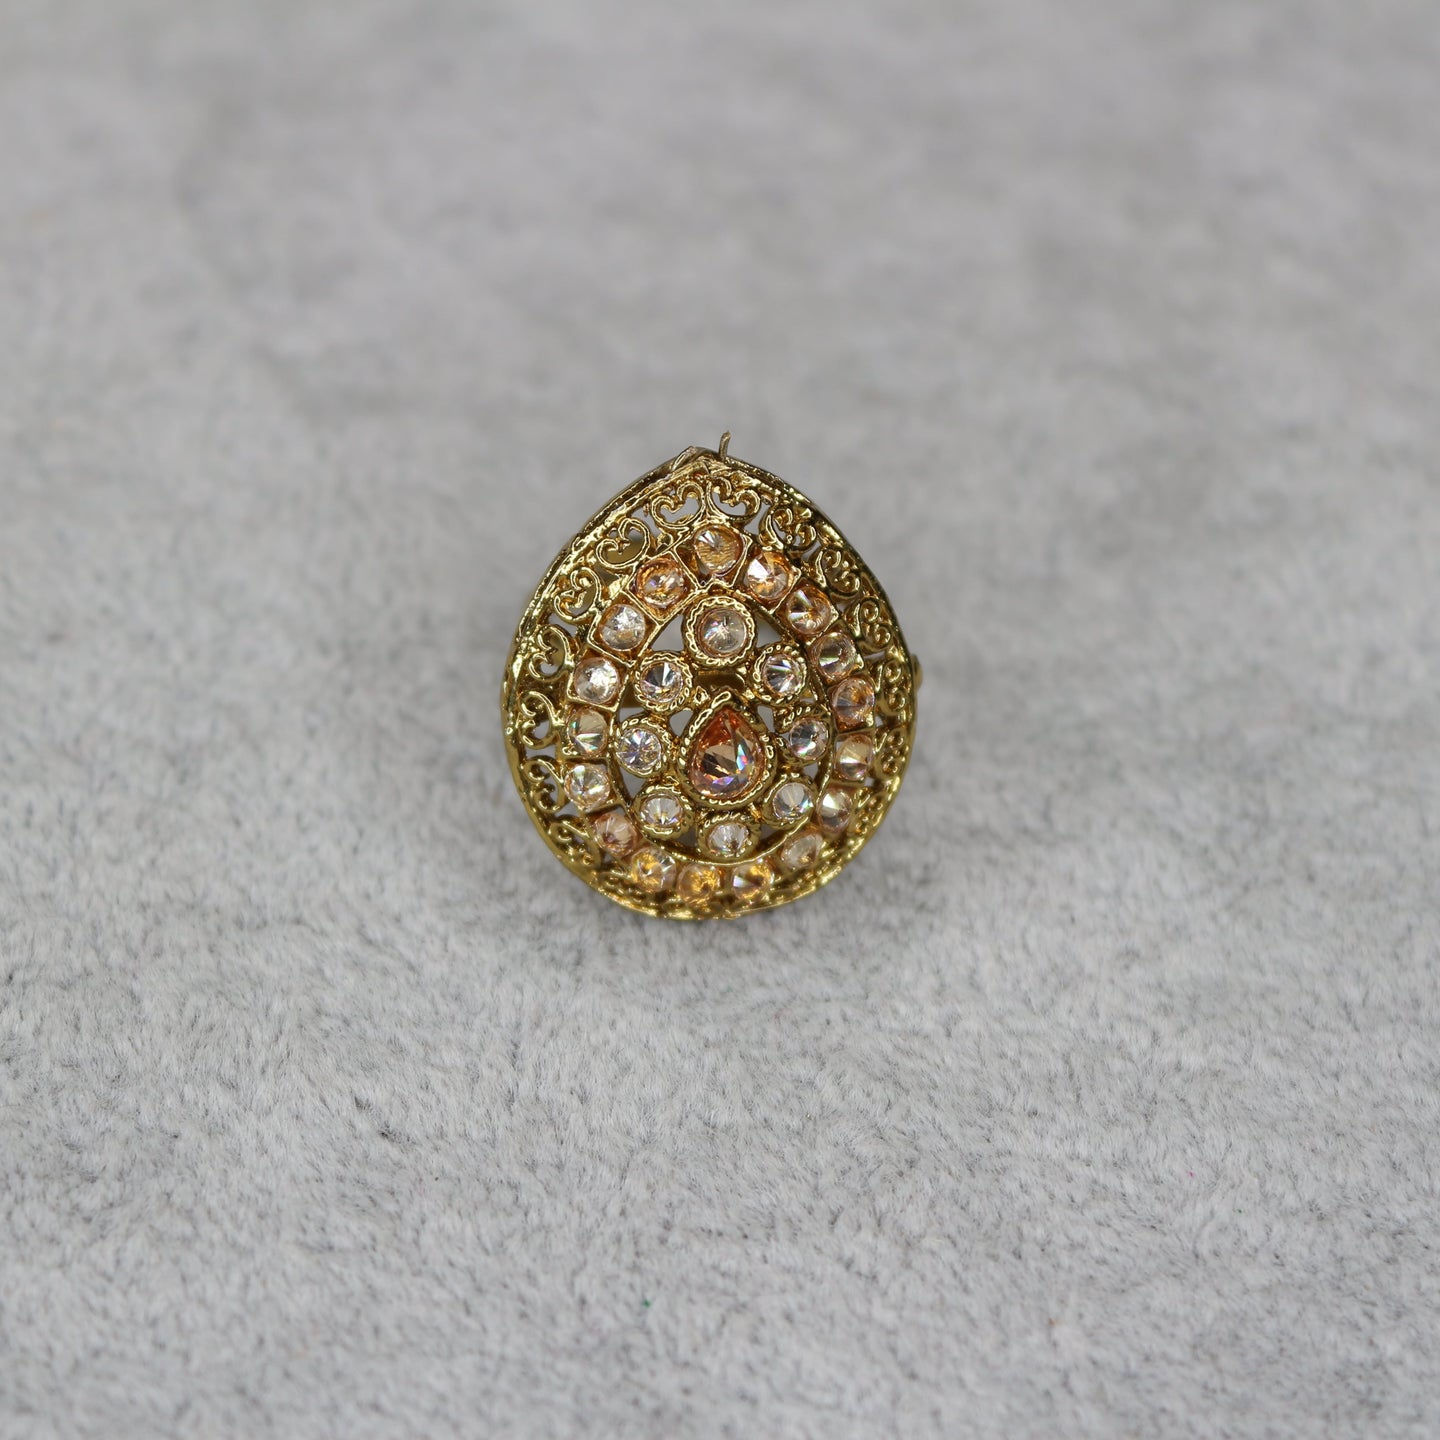 Small Antique Polki Ring